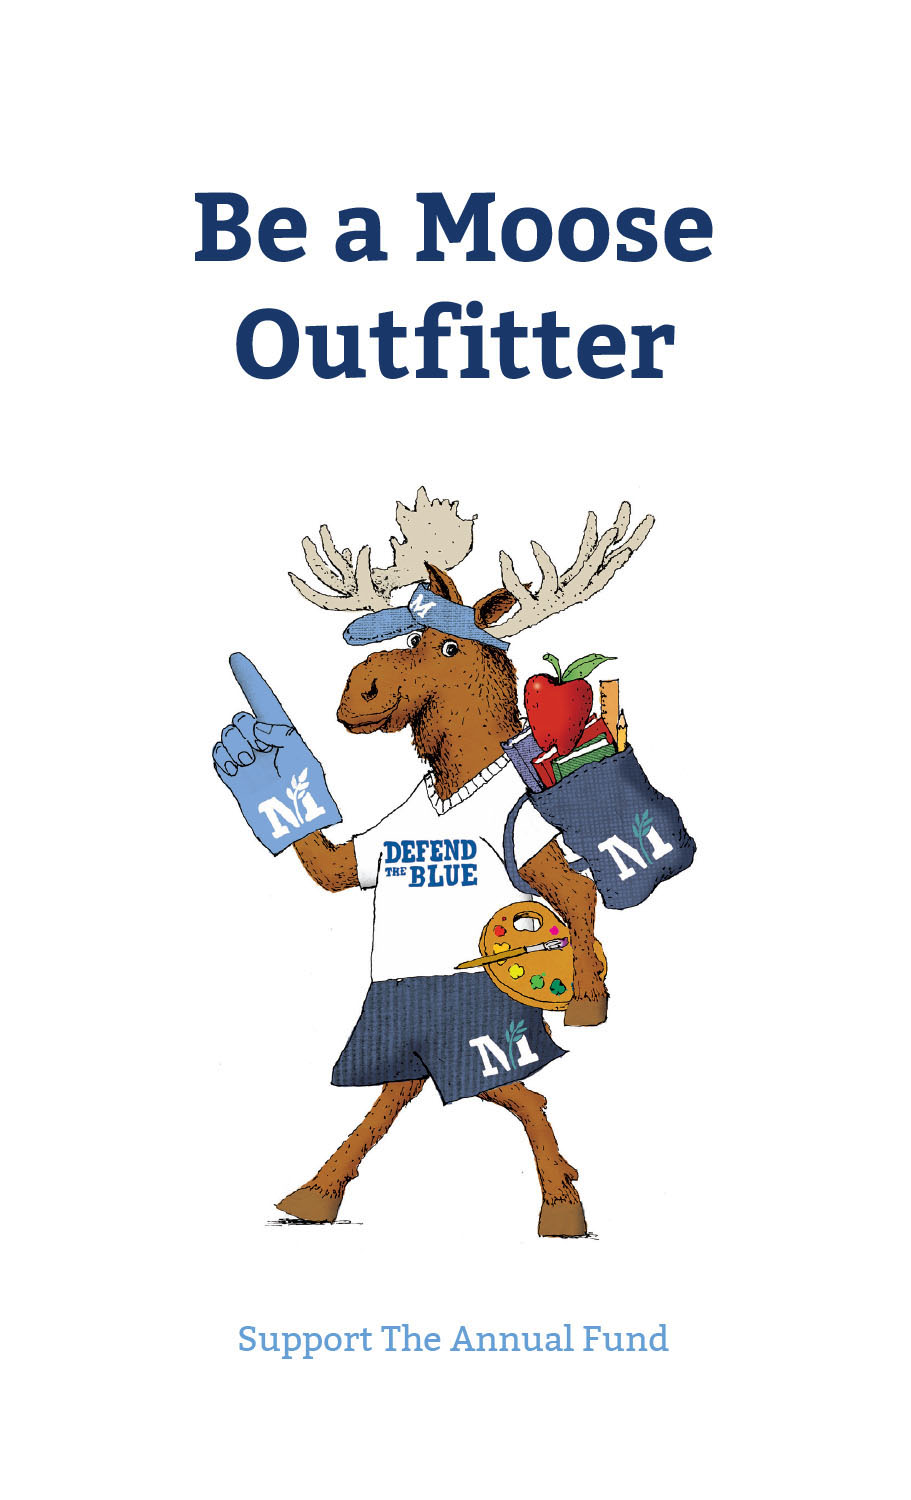 Copyright Daniel Baxter Become a Moose outfitter.jpg